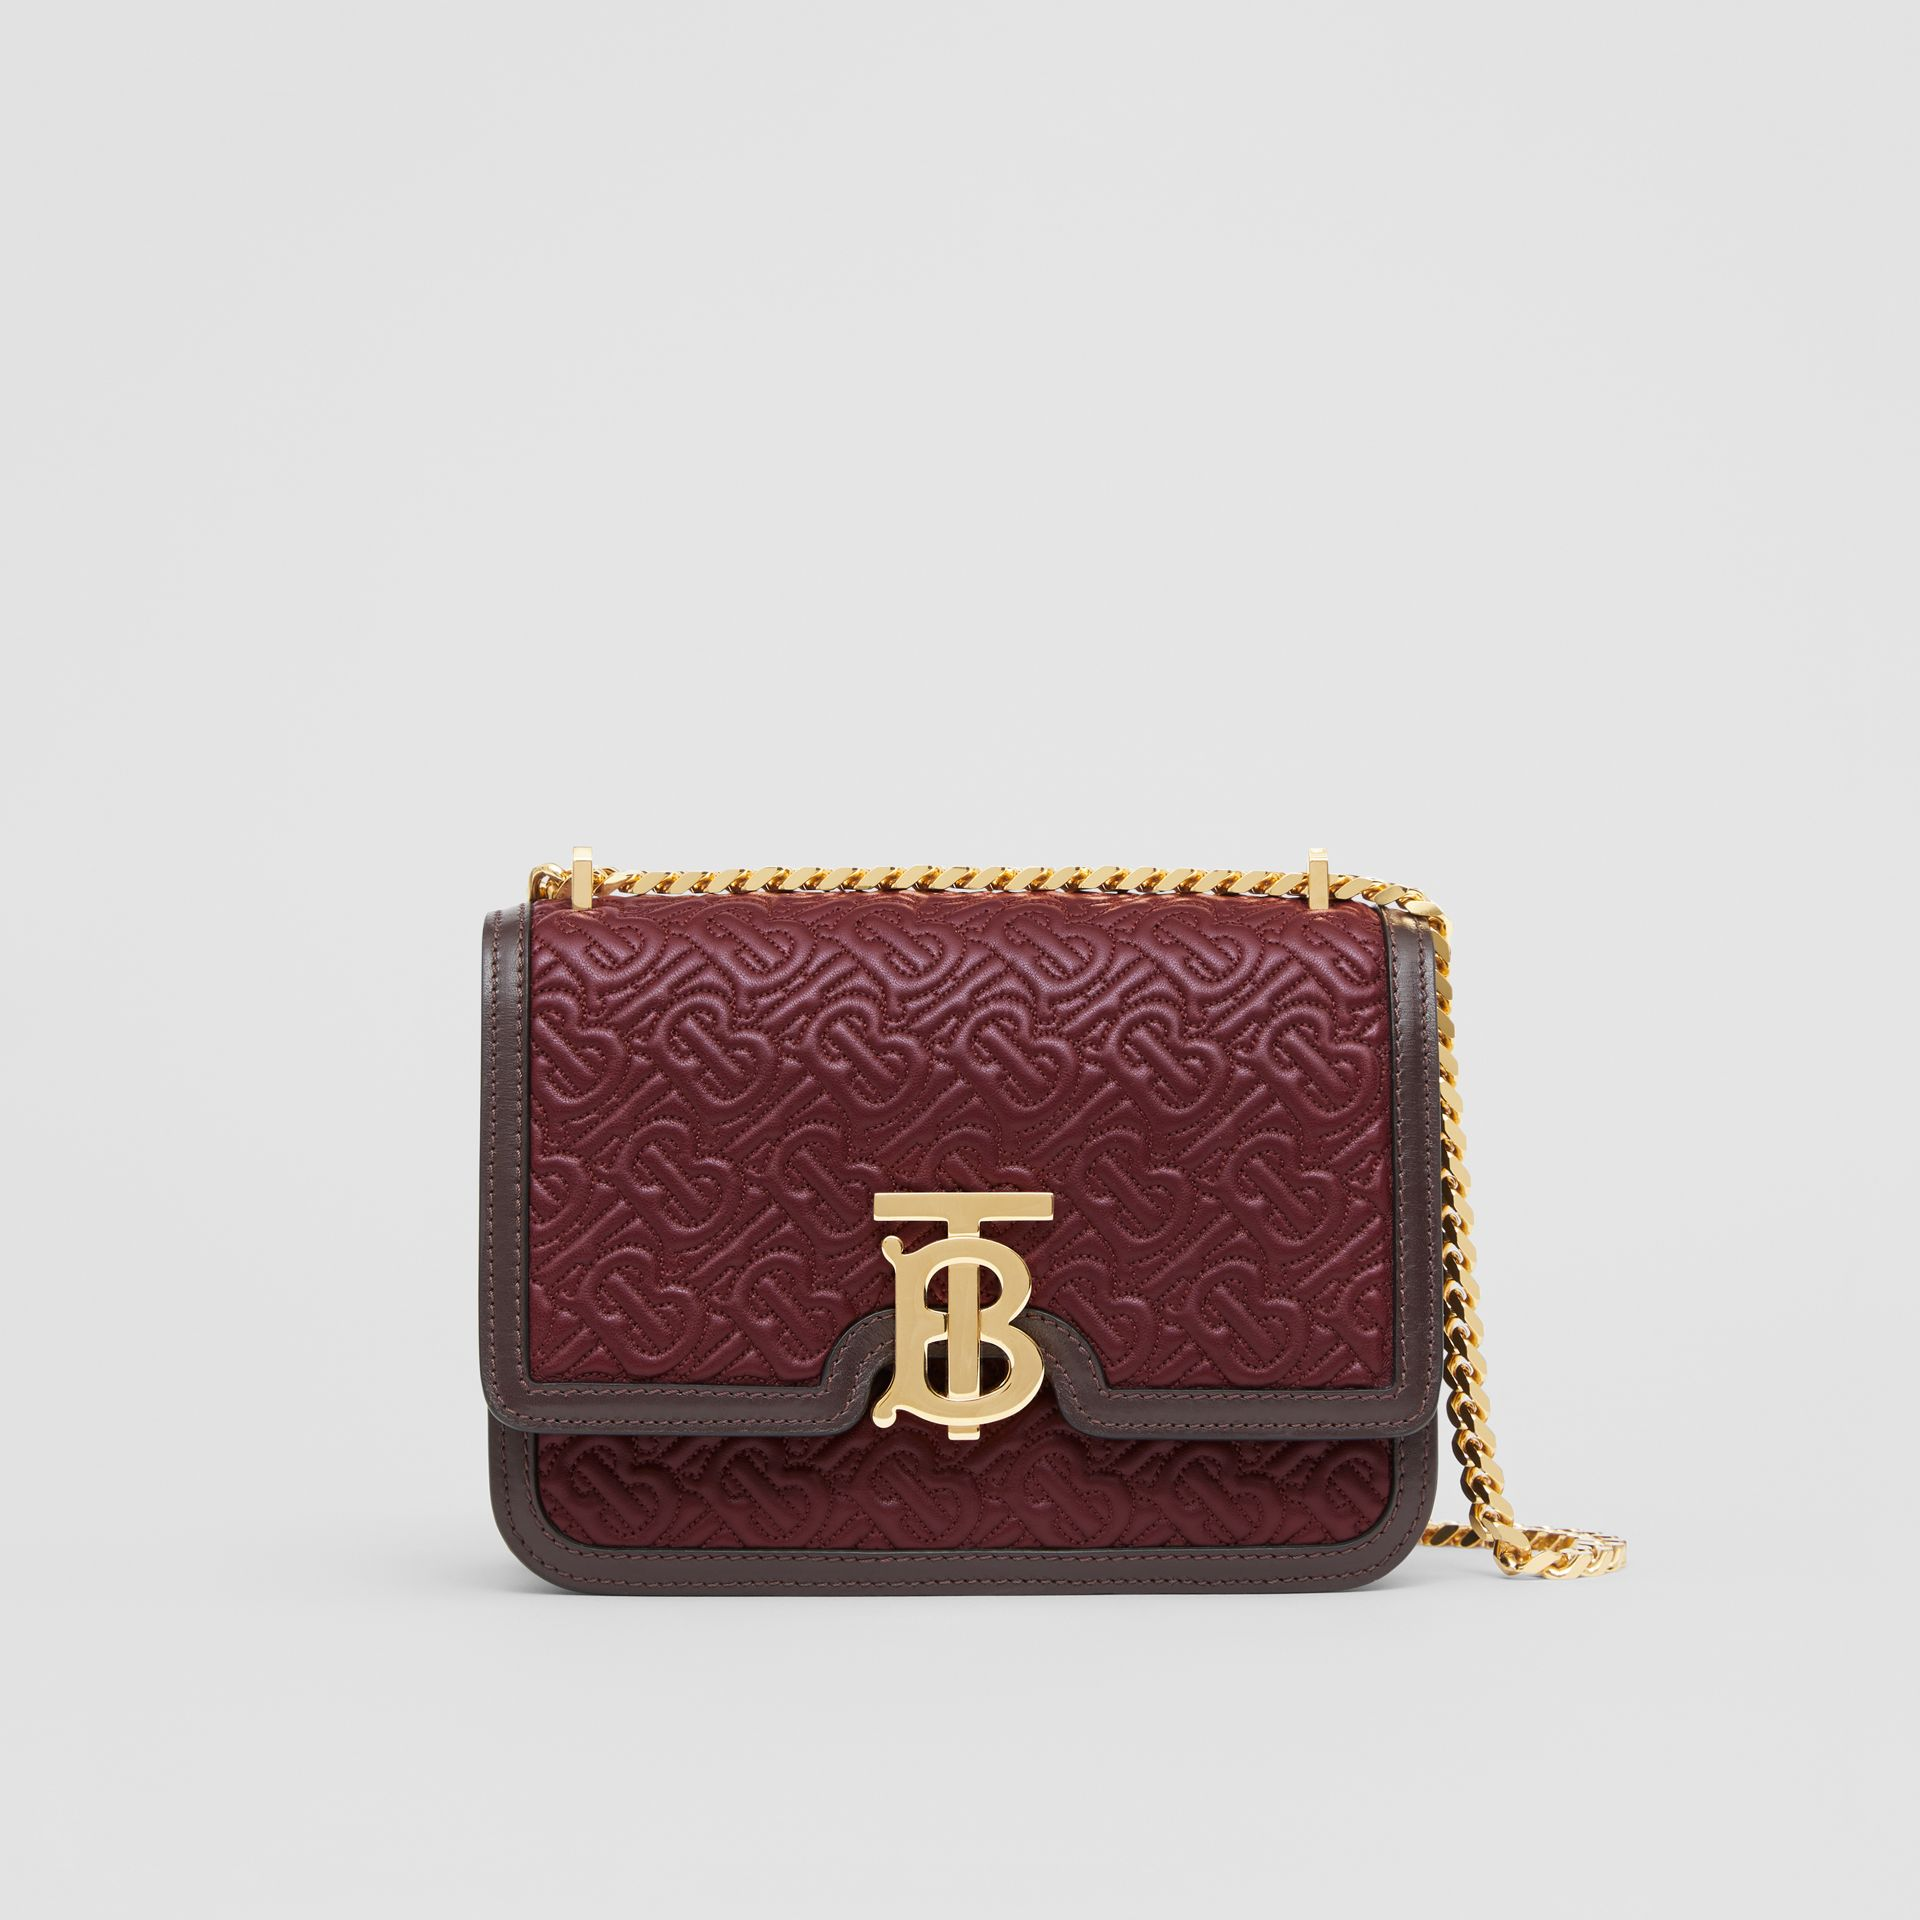 Small Quilted Monogram Lambskin TB Bag in Dark Burgundy - Women | Burberry - gallery image 0